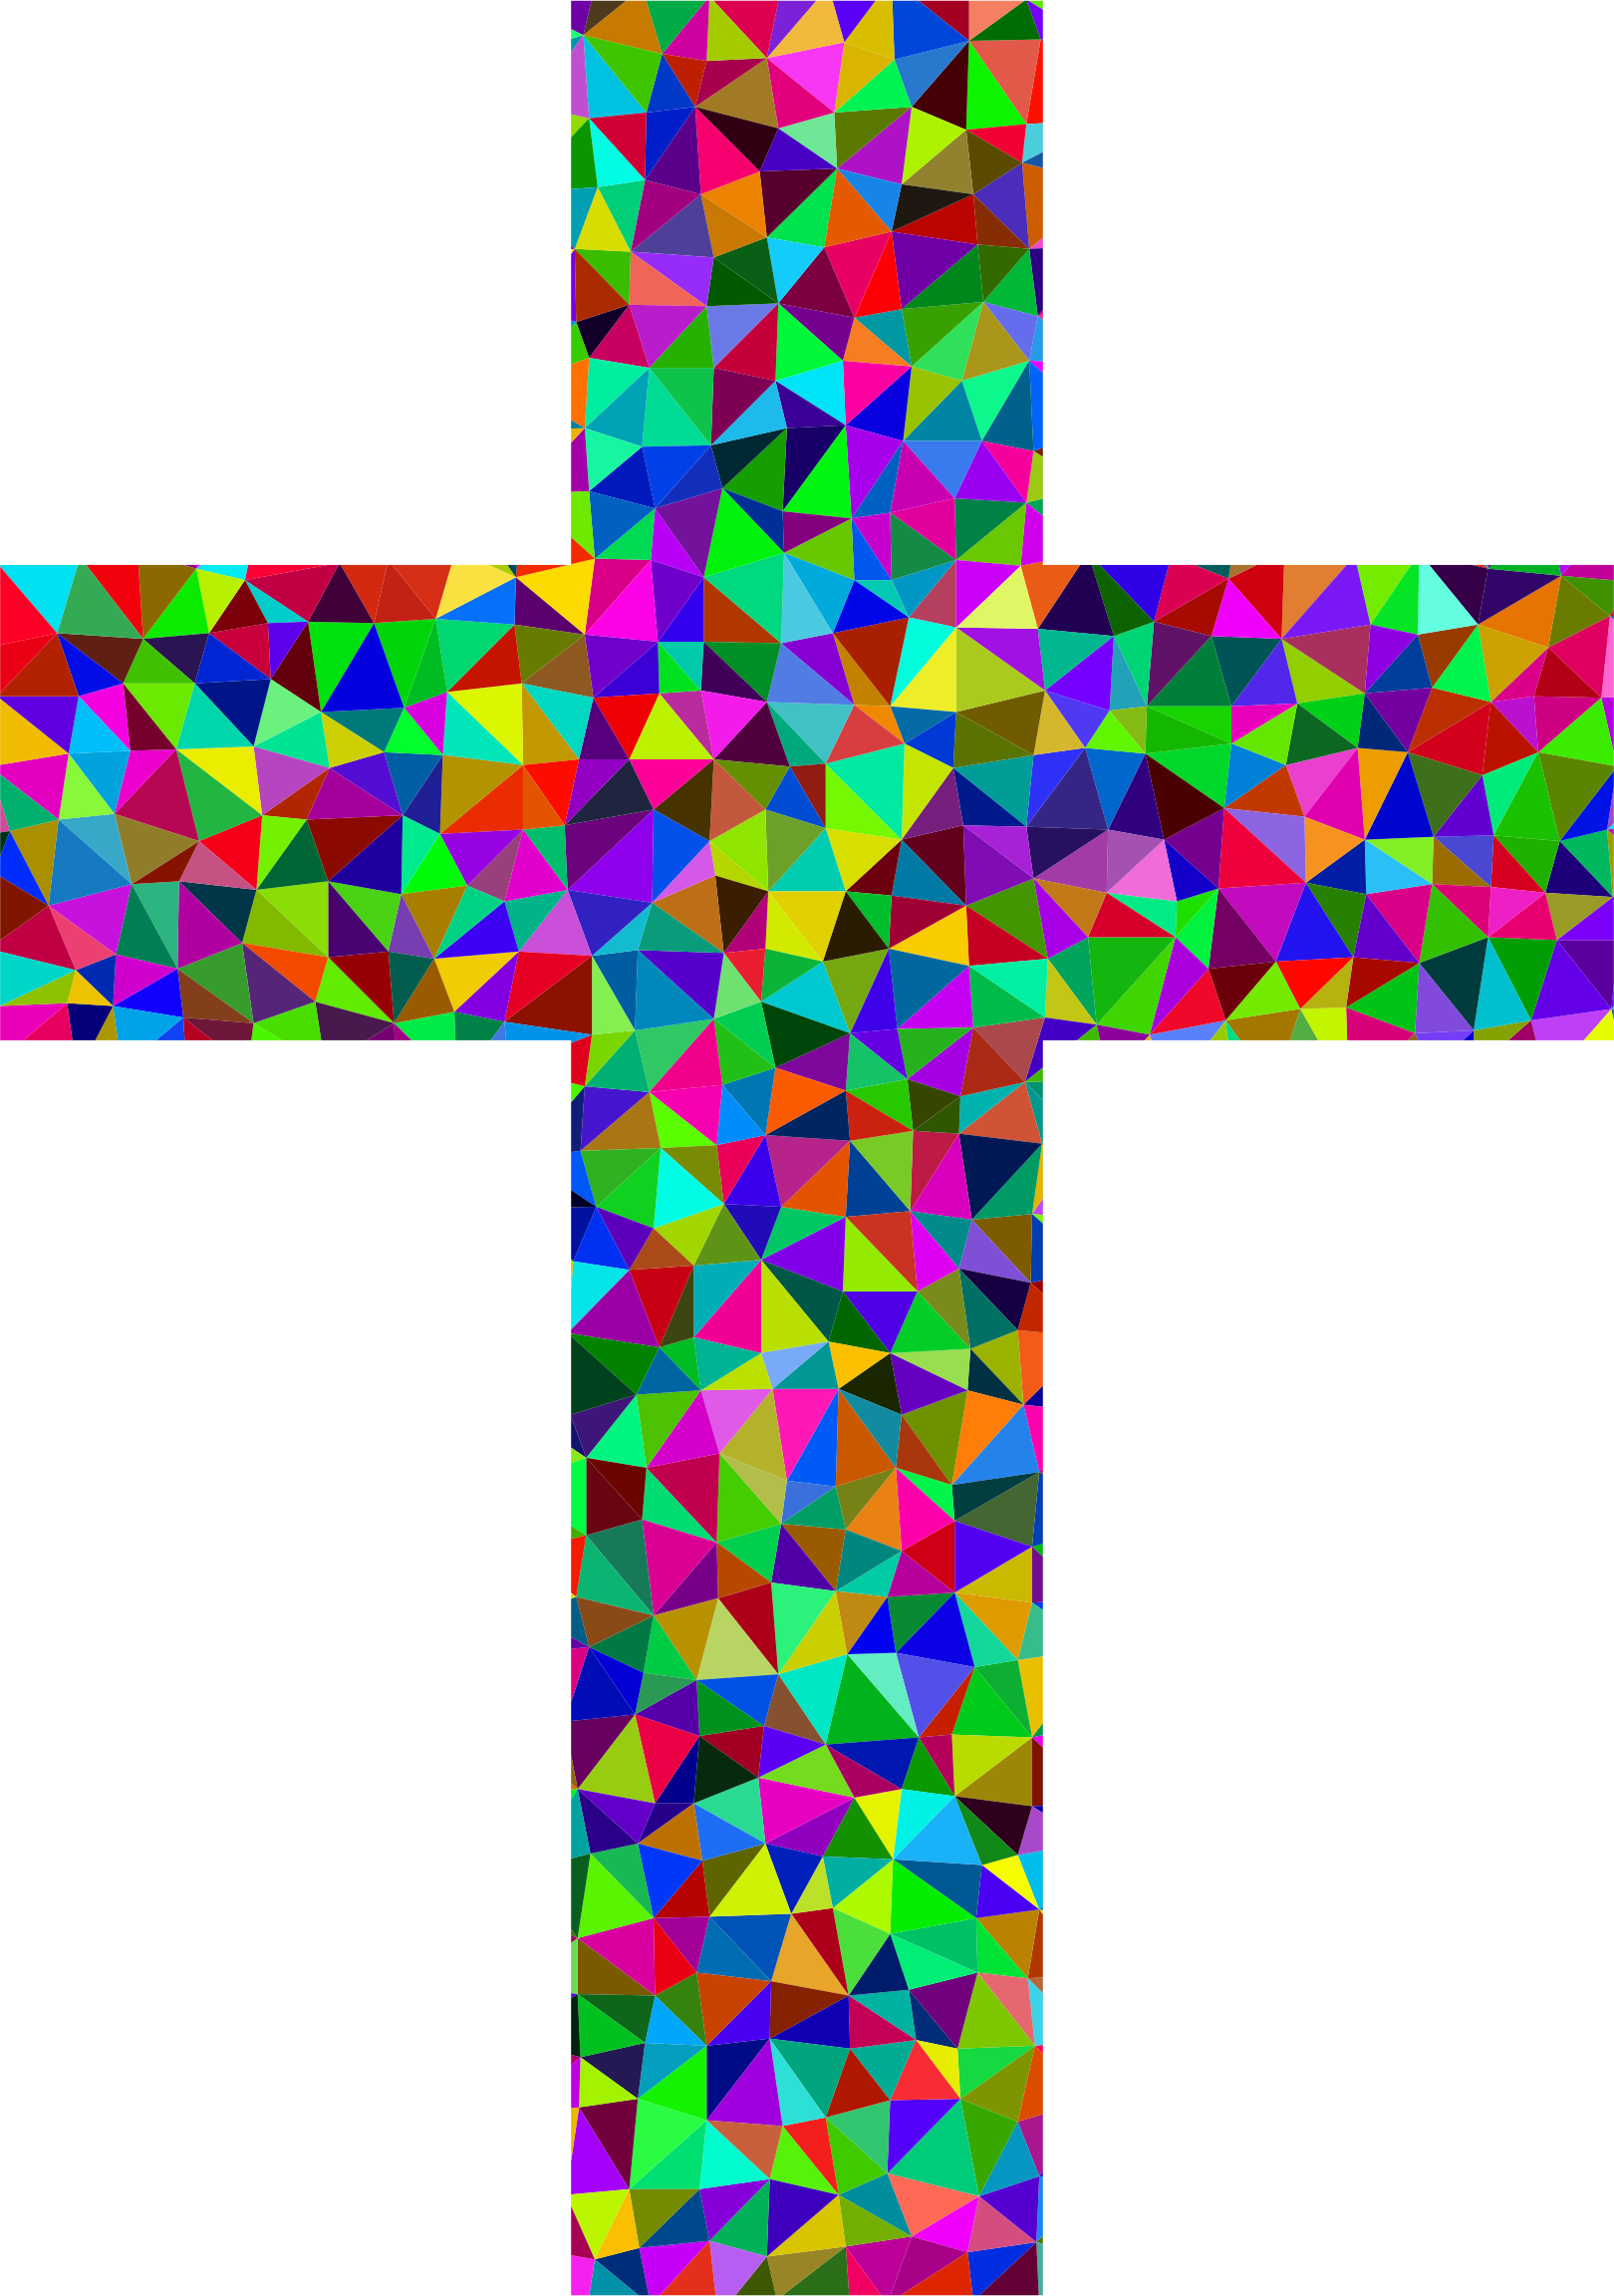 Crucifix clipart turquoise cross. Prismatic low poly big